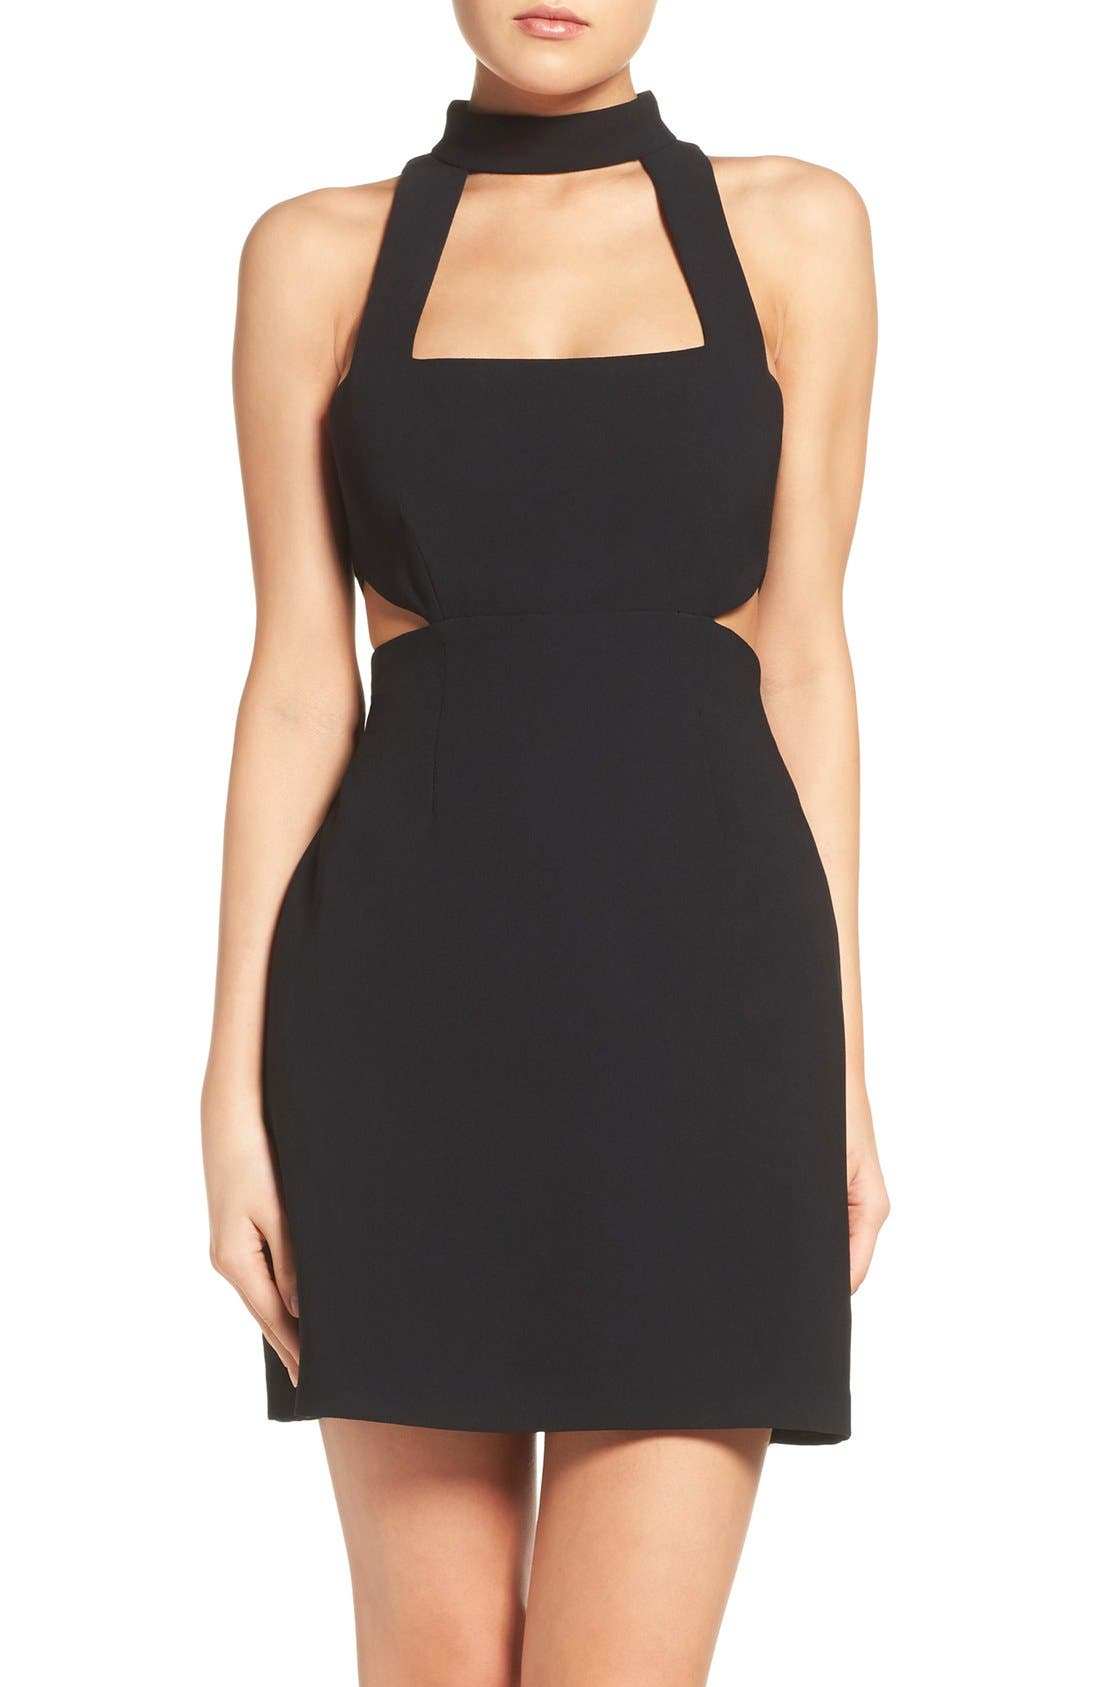 Jill Jill Stuart High Neck Cutout Crepe Dress